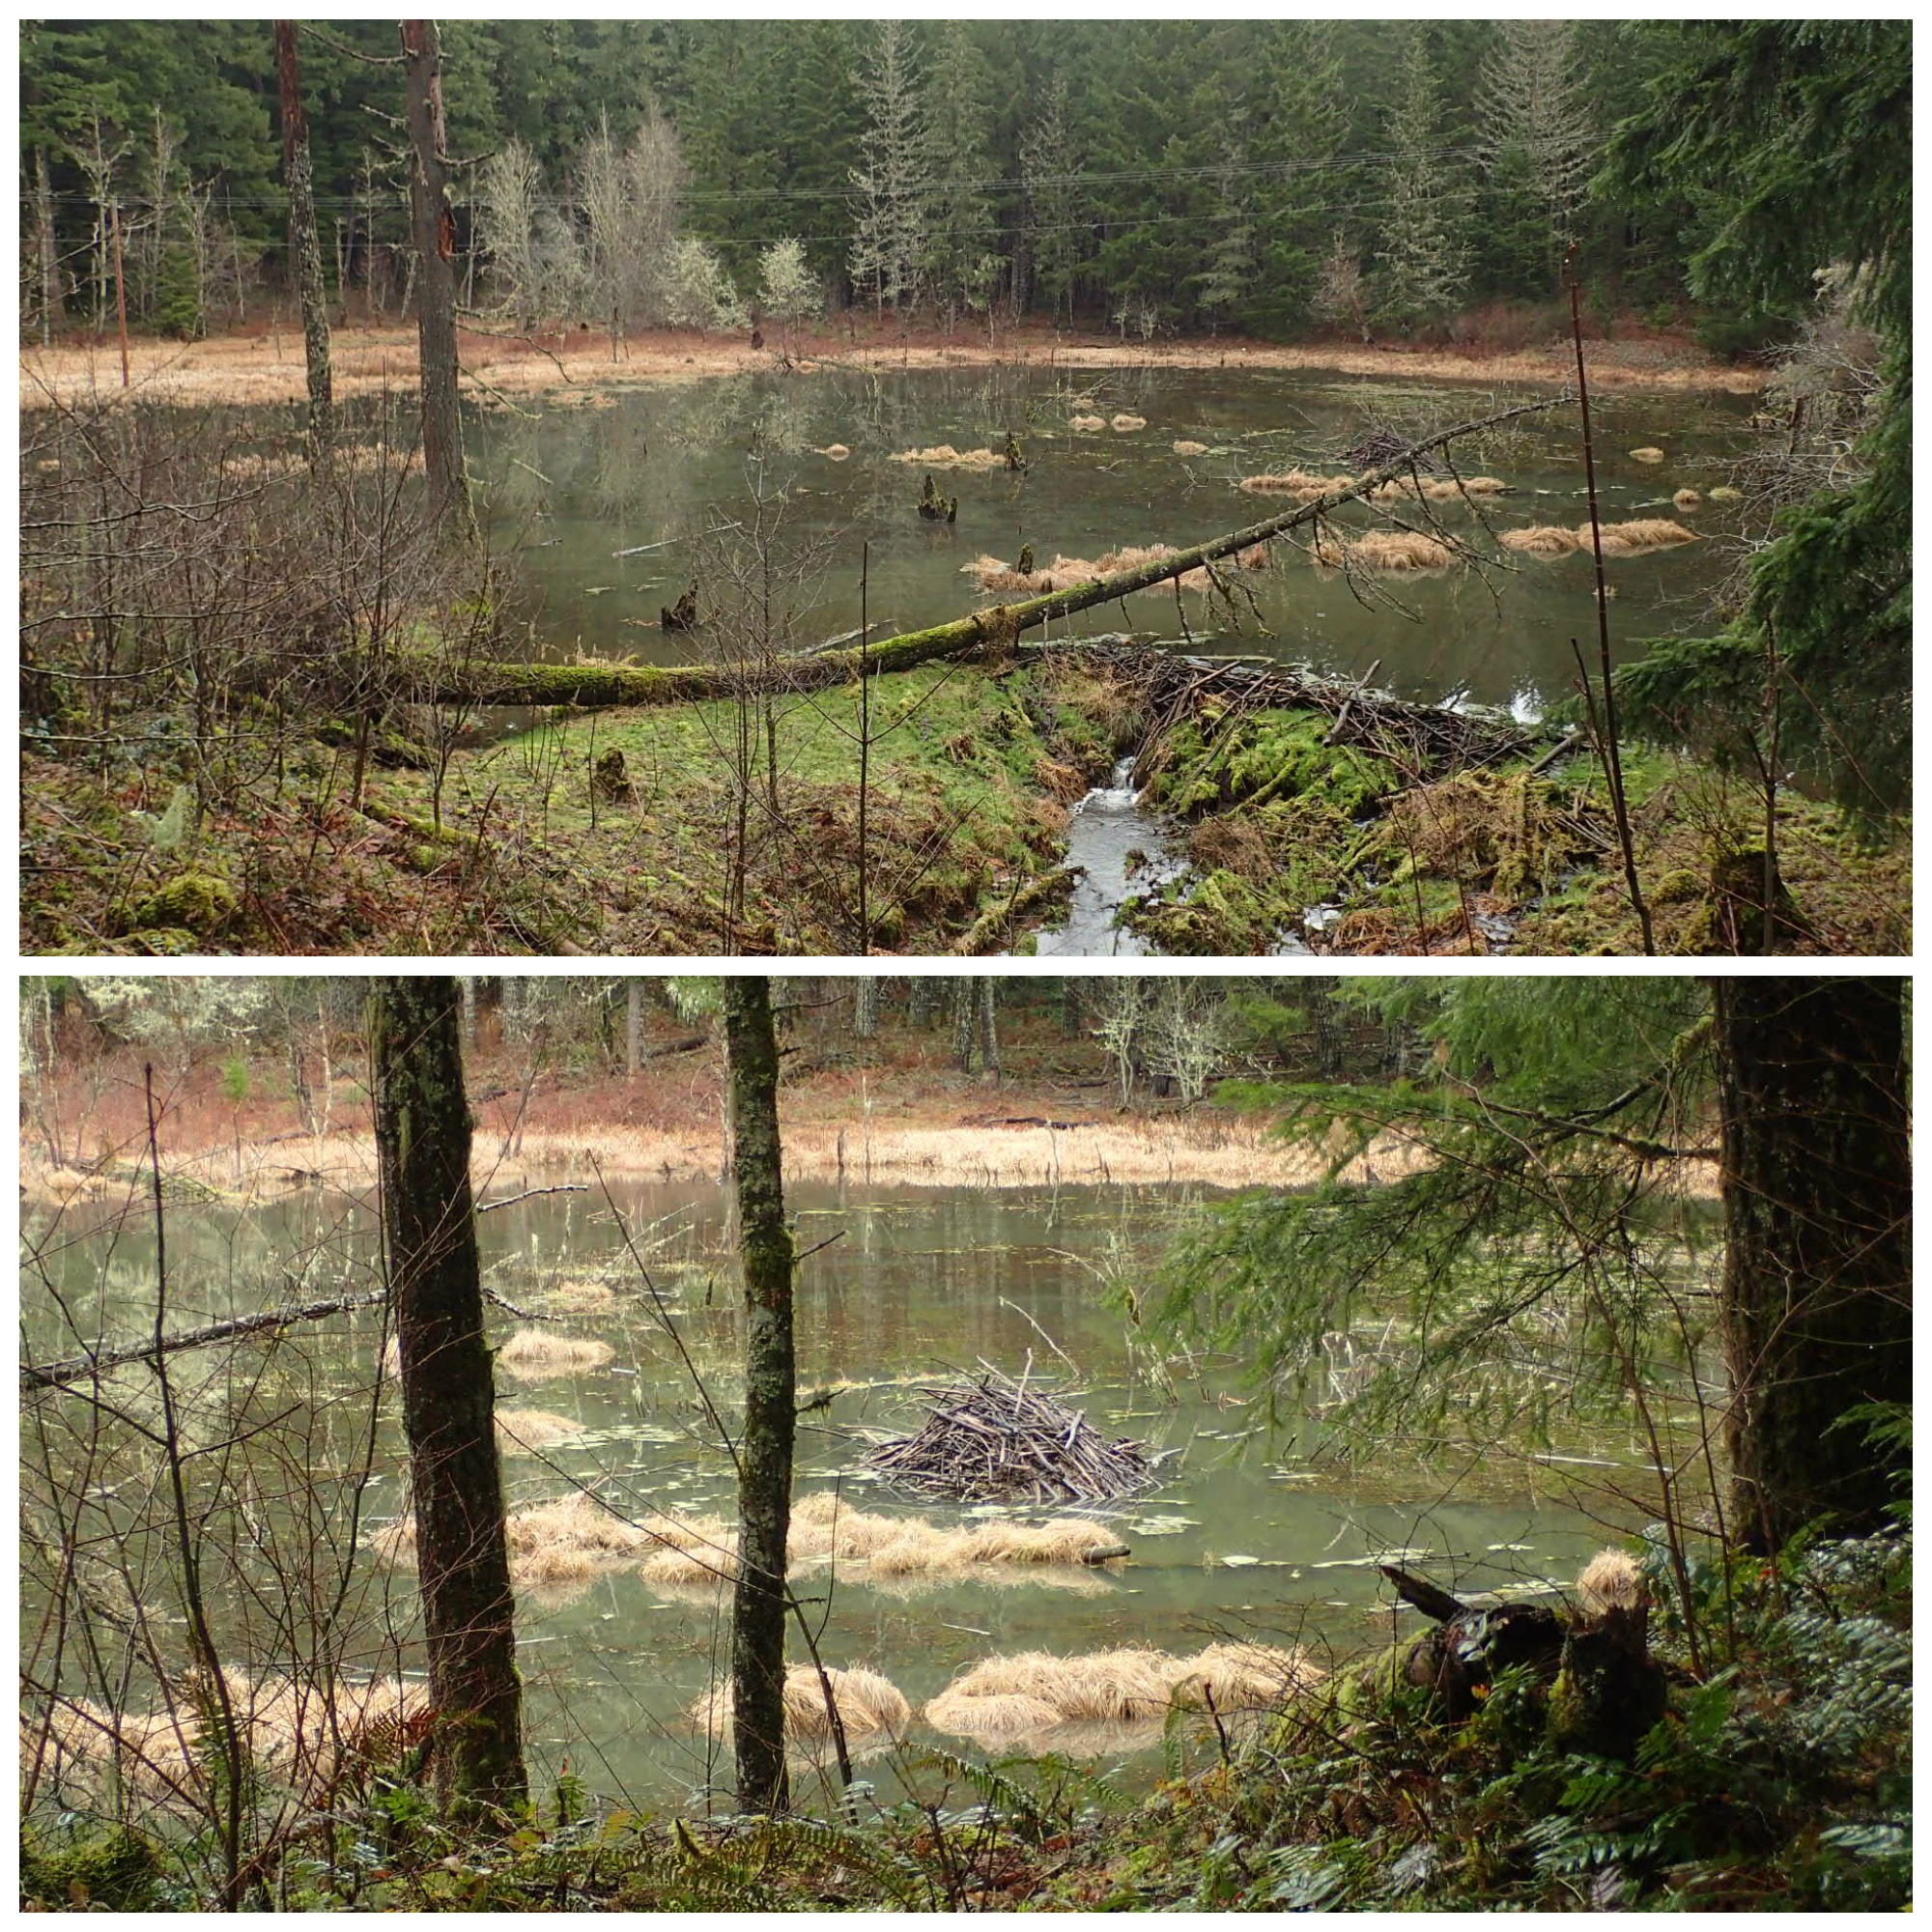 Ripplebrook beaver lodge and dam, Heather Chapin